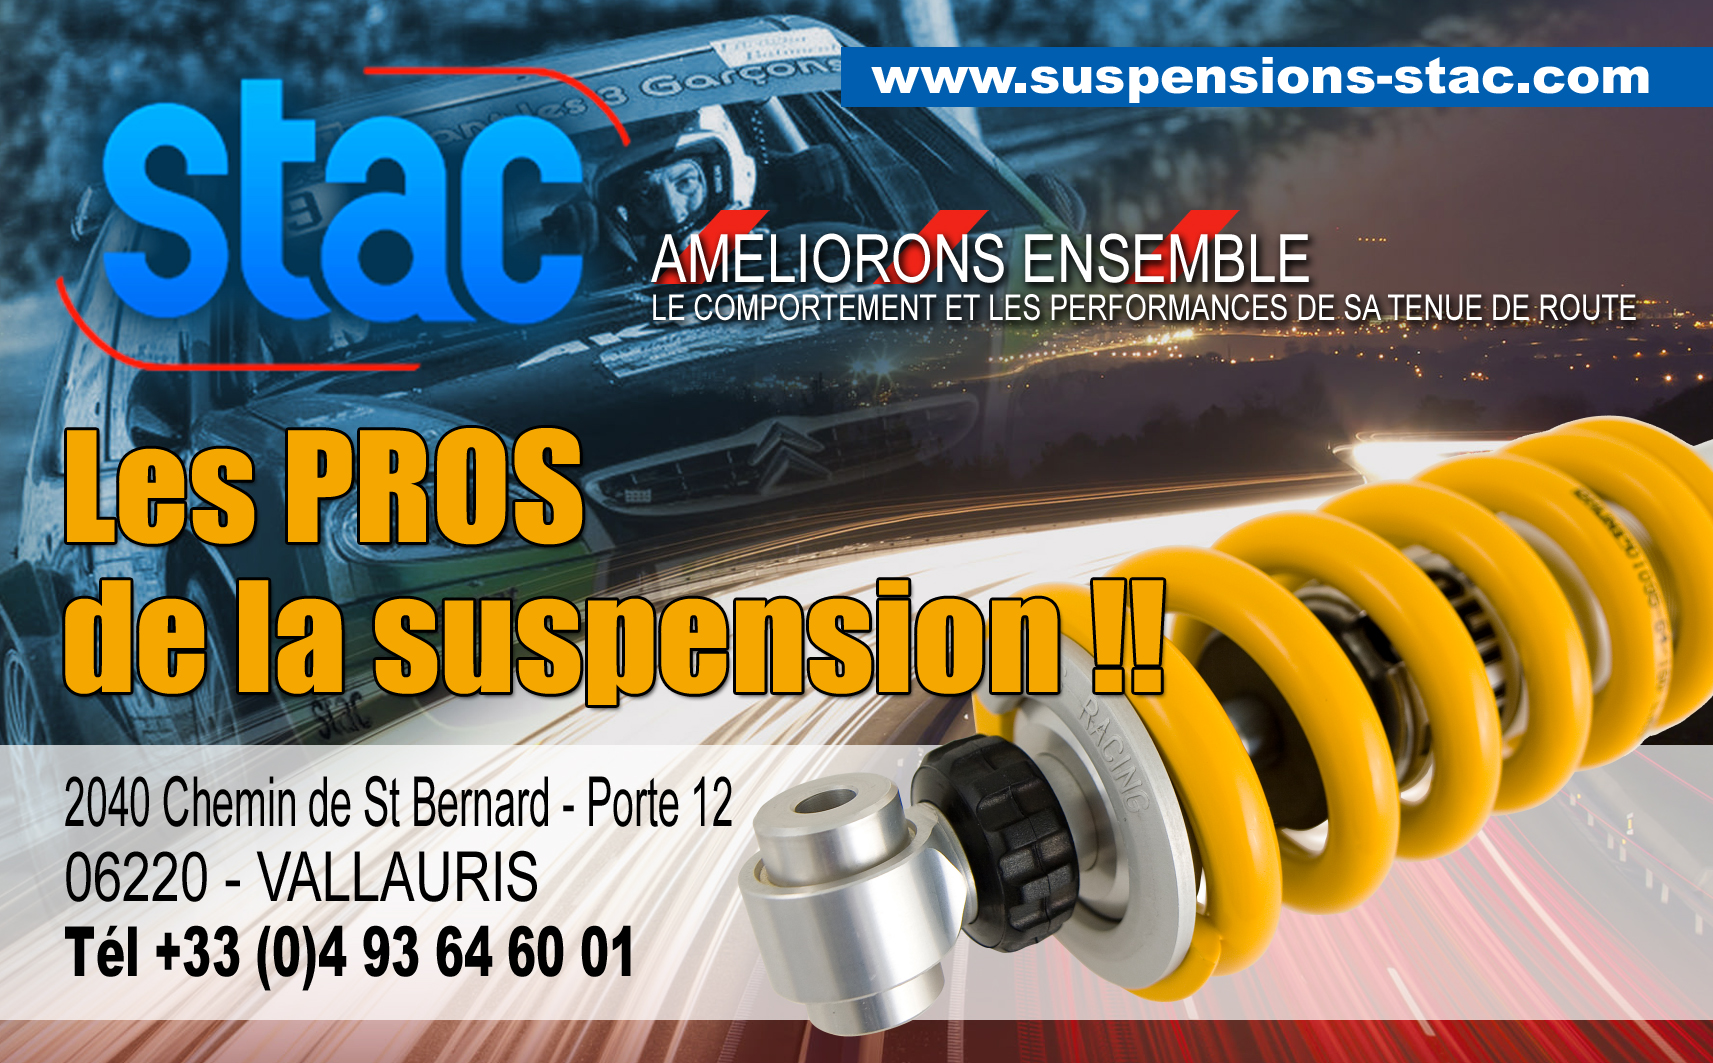 SUSPENSION STAC